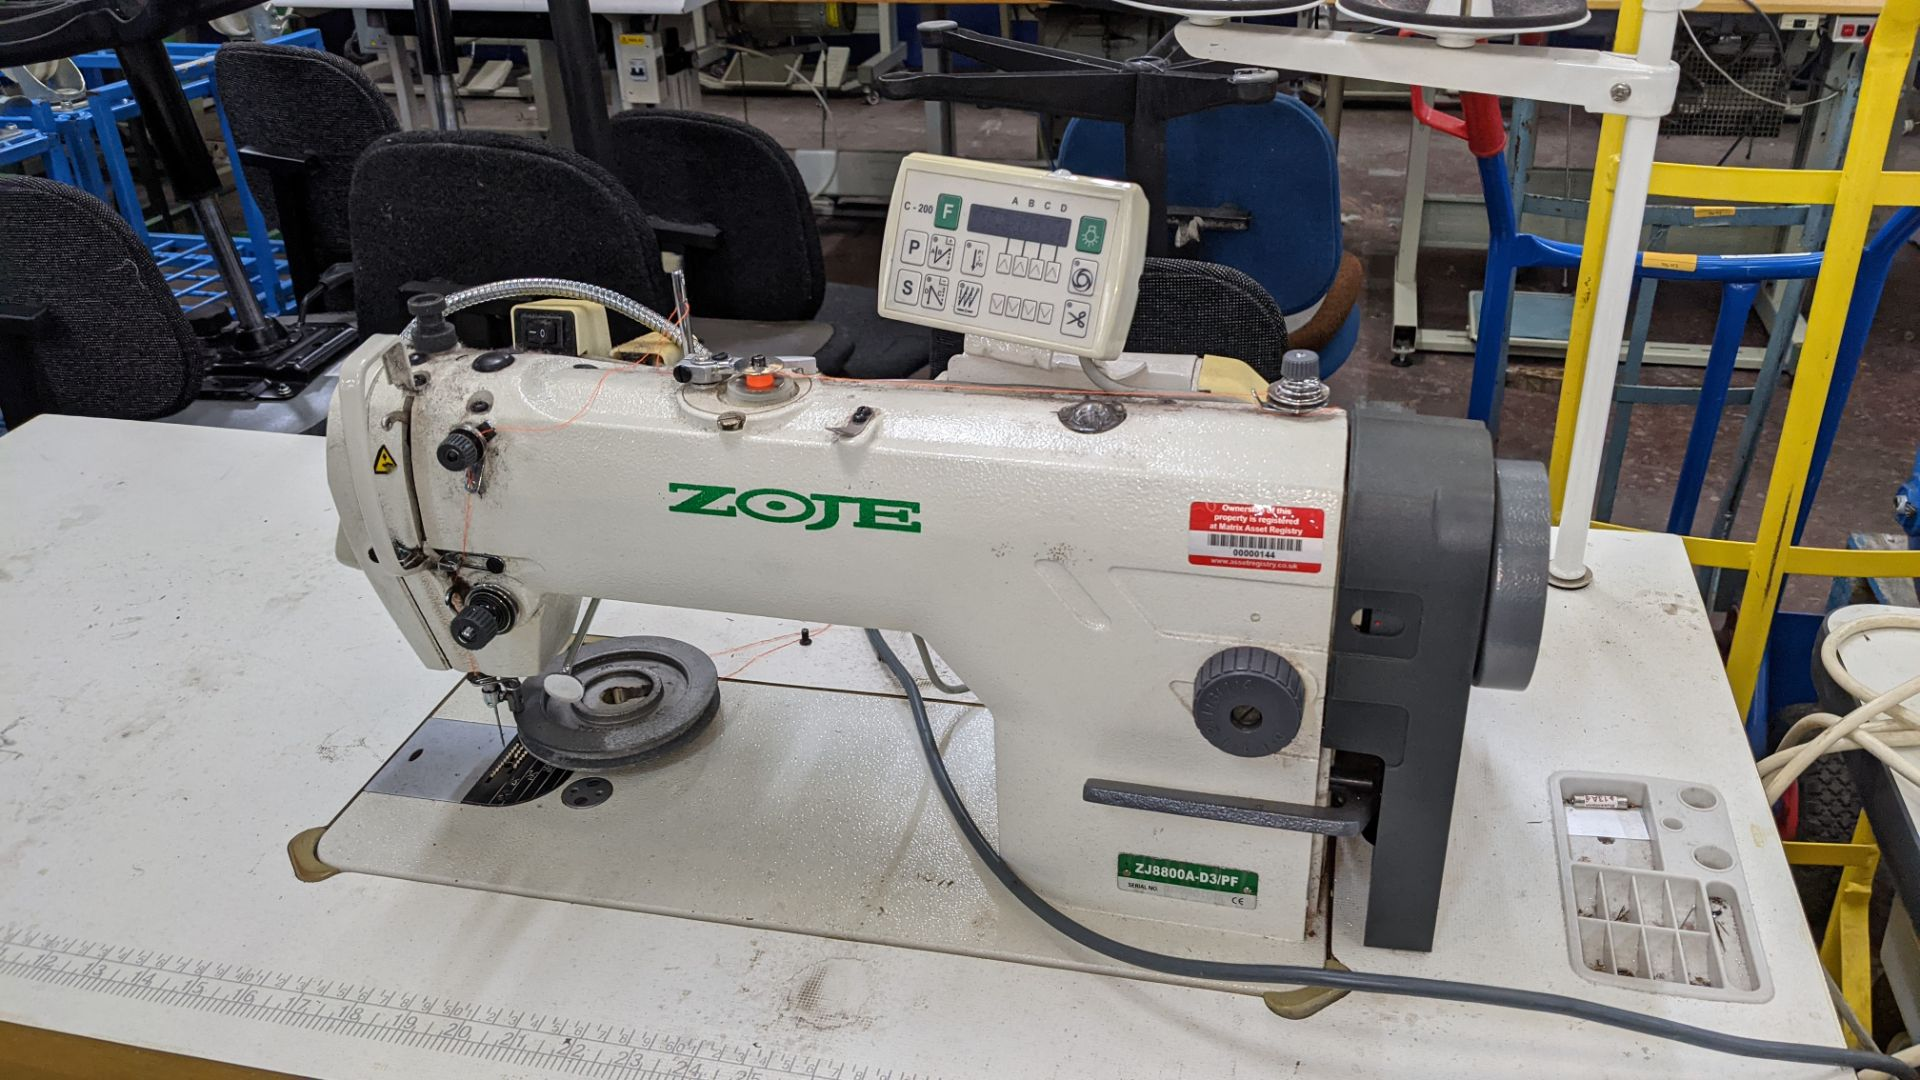 Zoje model ZJ8800A-D3B/PF sewing machine with C-200 controller - Image 5 of 16